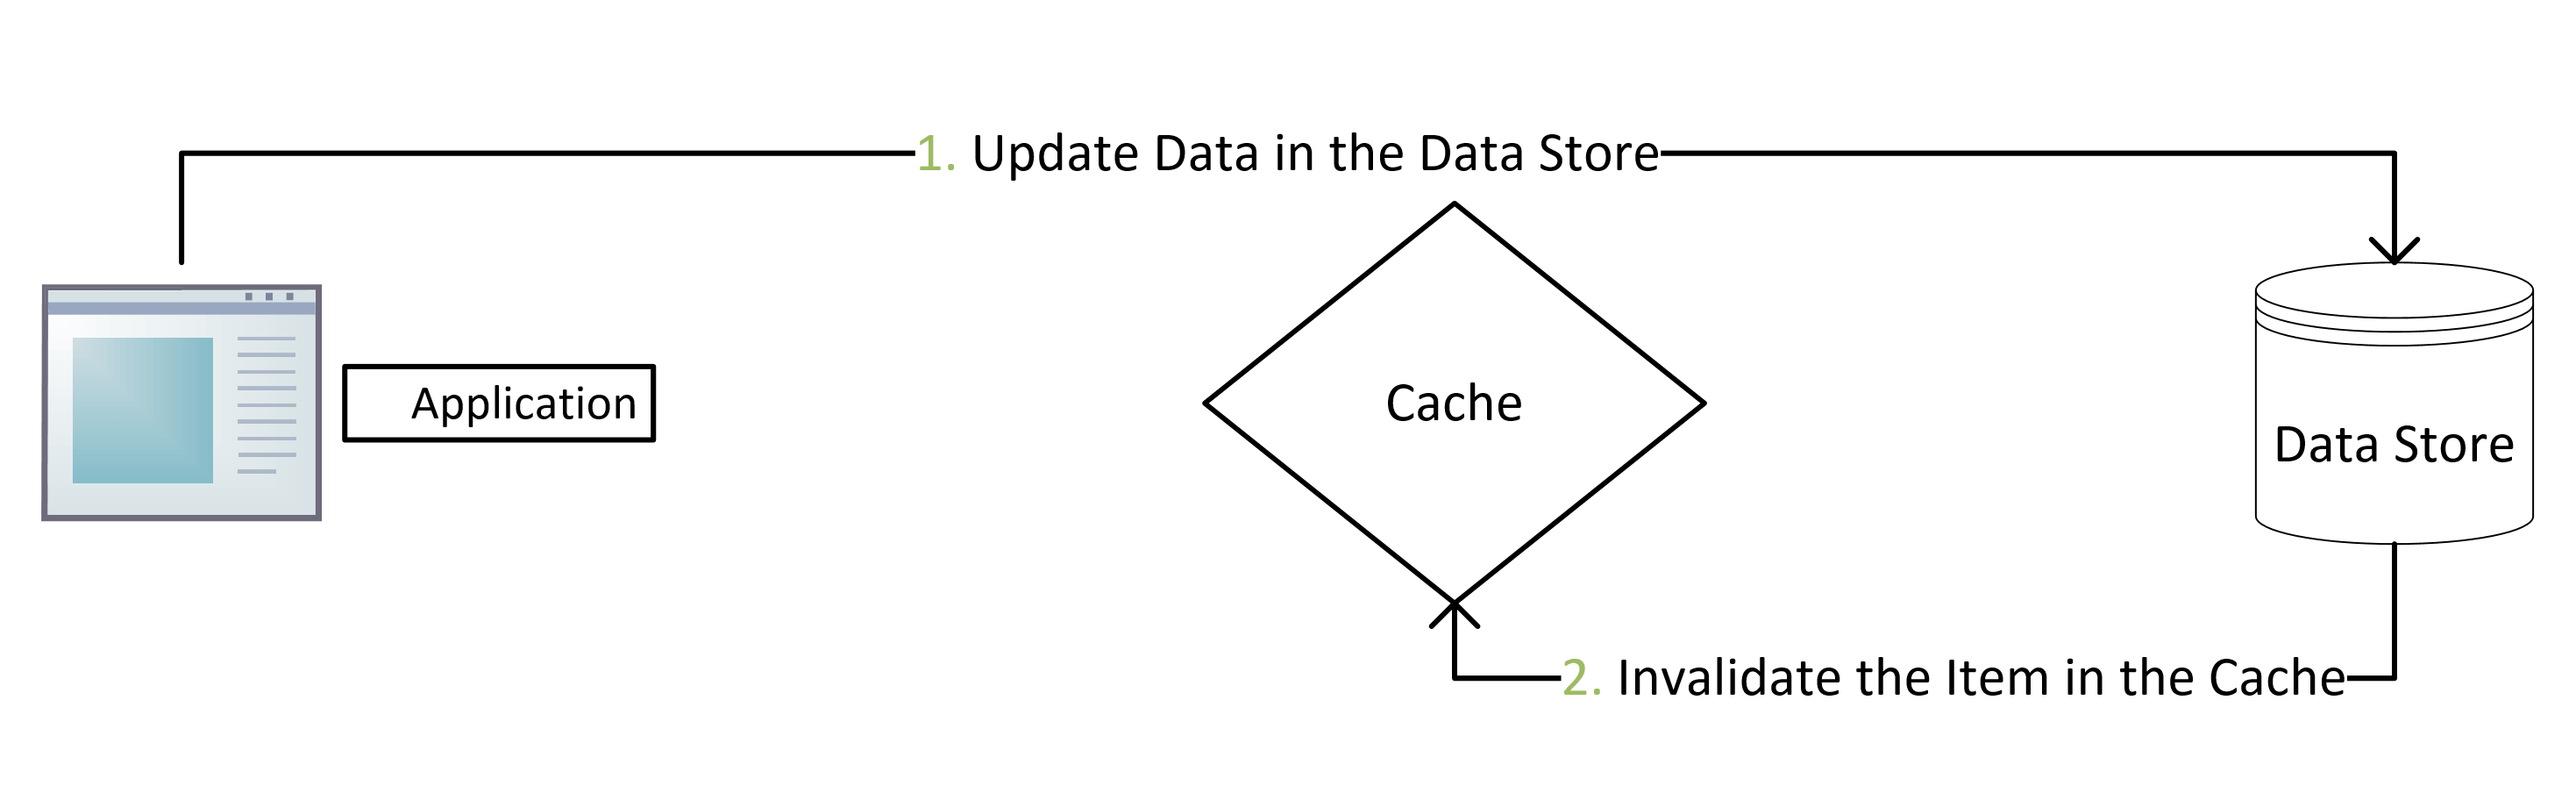 Updating Data using the Cache-Aside Pattern - Flow Diagram